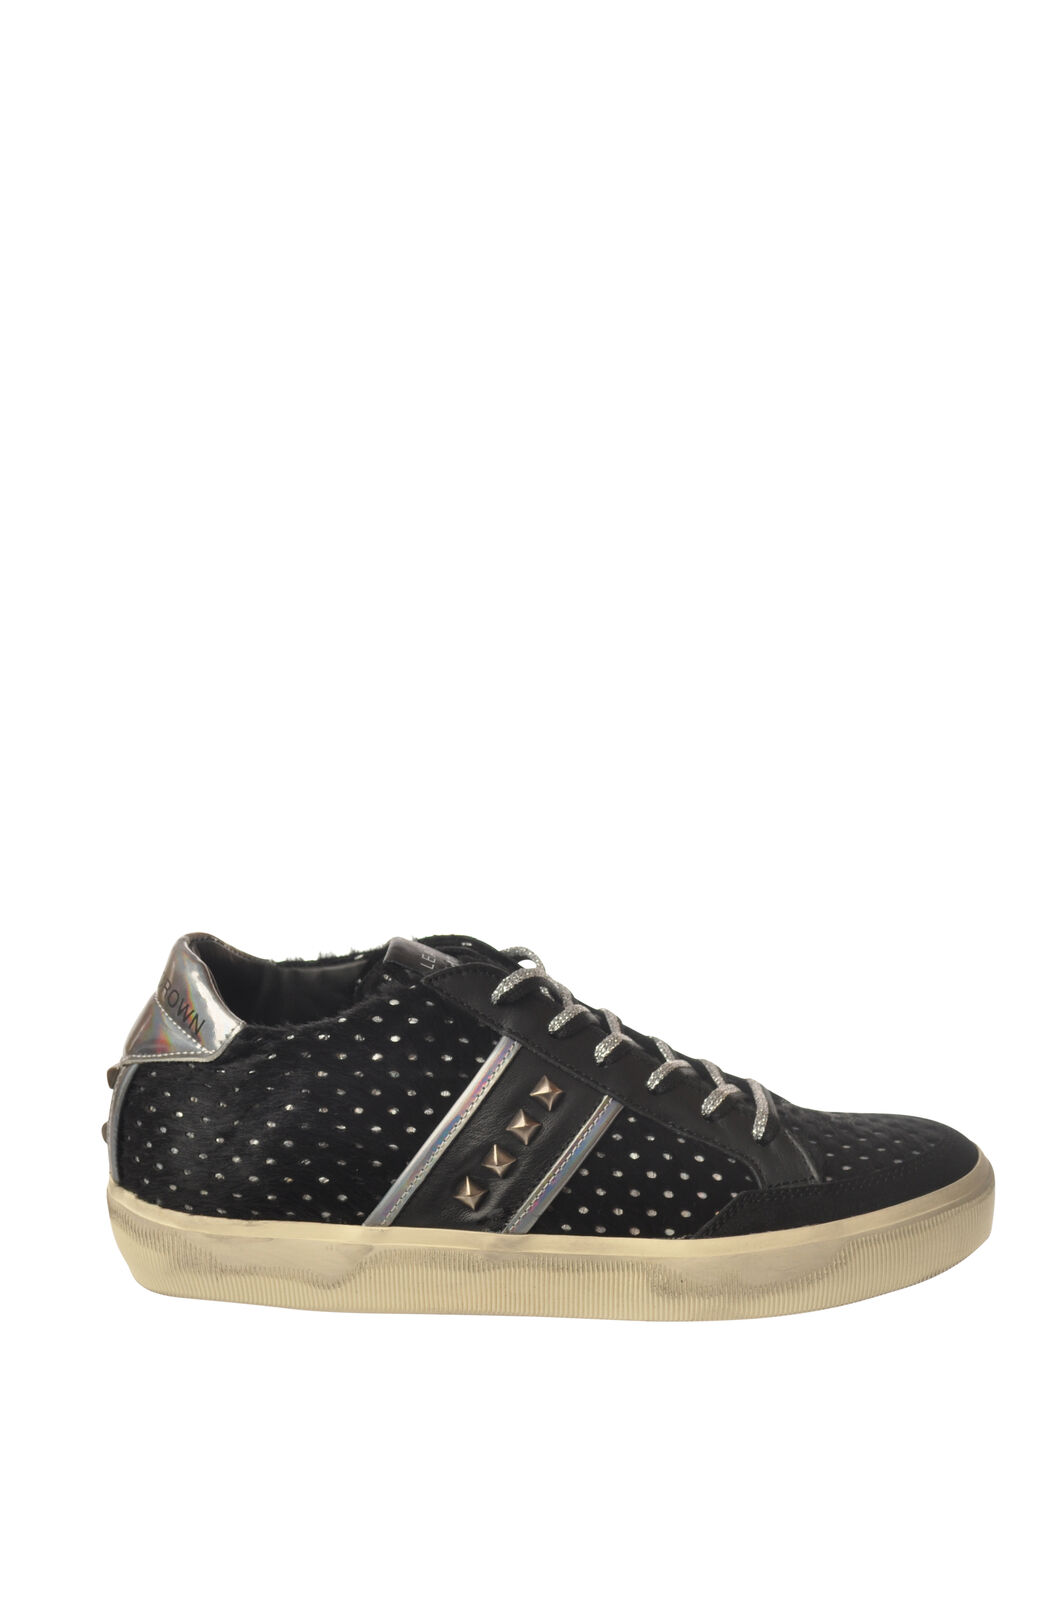 Leather Crown - shoes-Sneakers low - Woman - Black - 5447125I184817